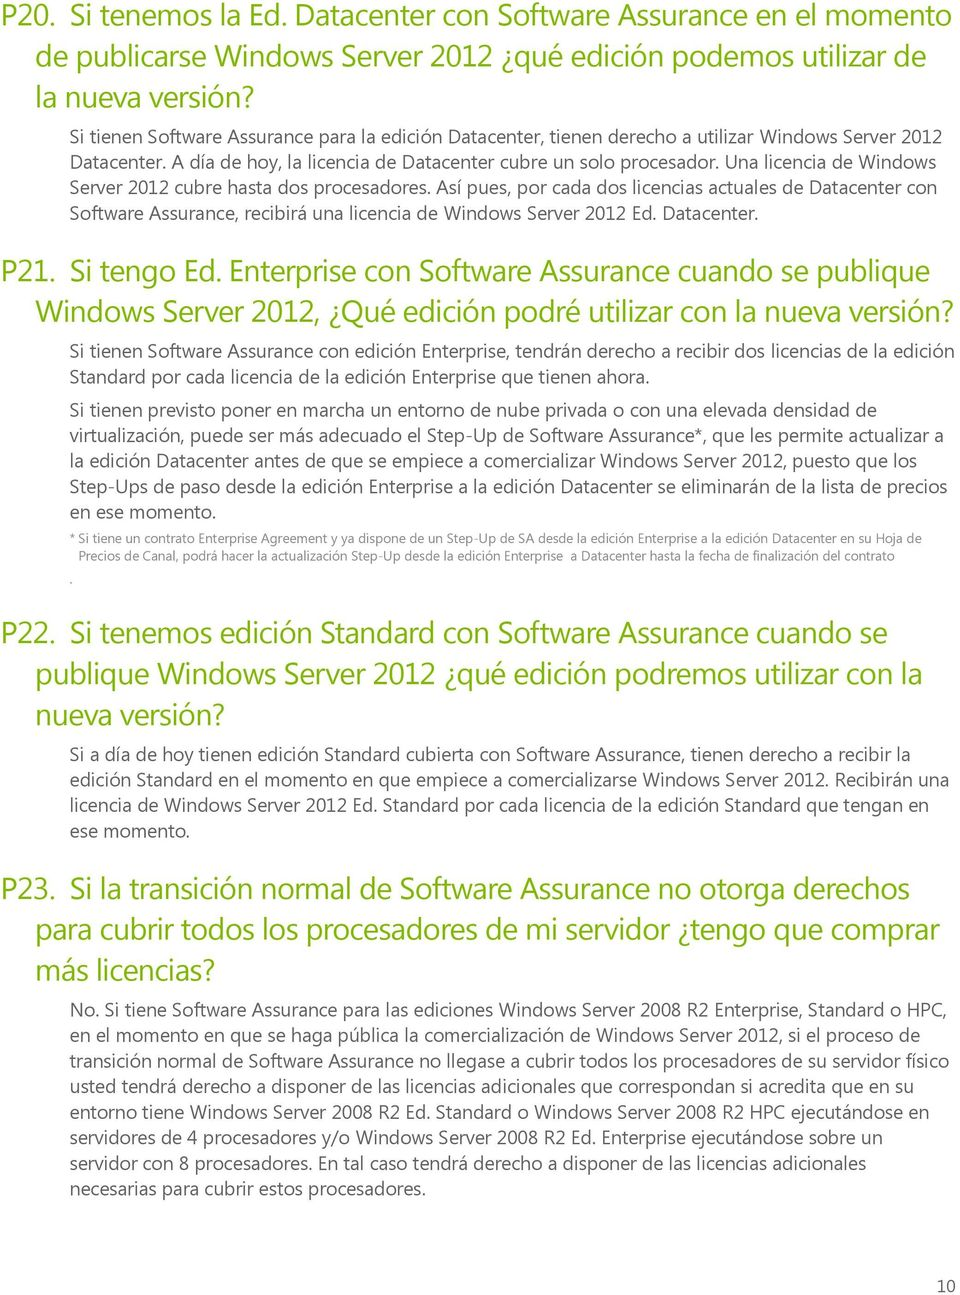 Una licencia de Windows Server 2012 cubre hasta dos procesadores. Así pues, por cada dos licencias actuales de Datacenter con Software Assurance, recibirá una licencia de Windows Server 2012 Ed.